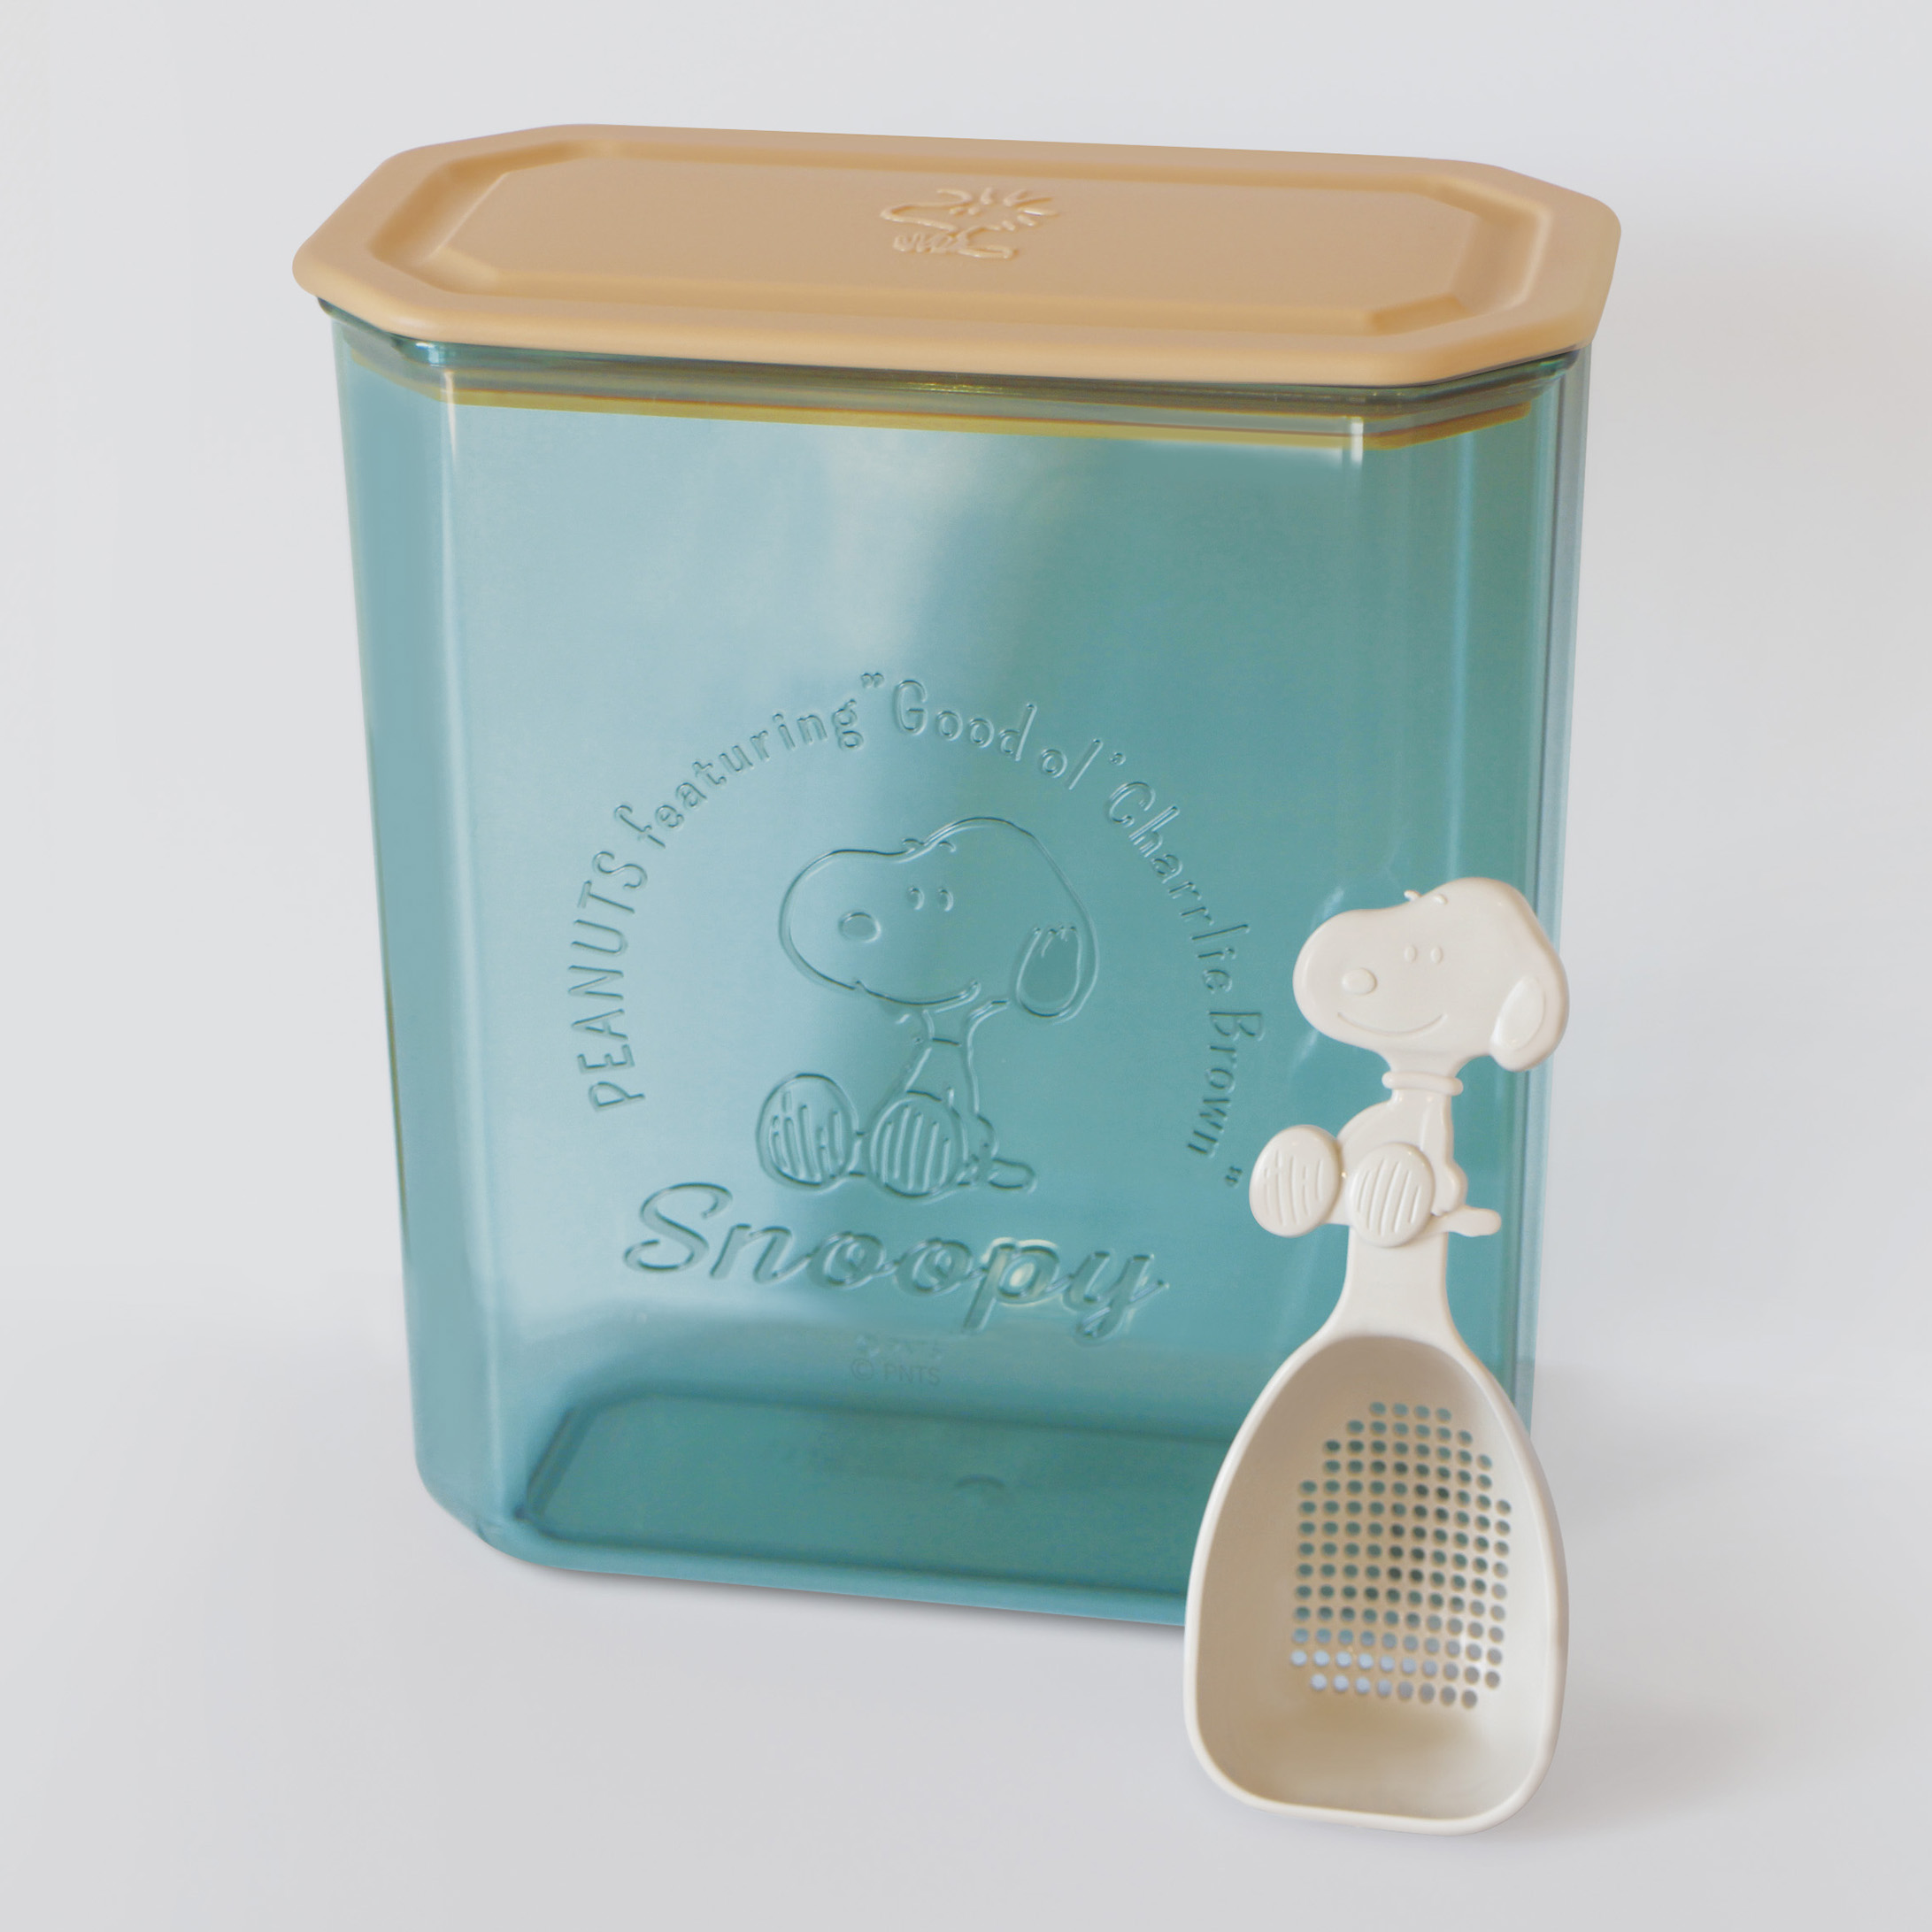 sn-powdercontainer-g